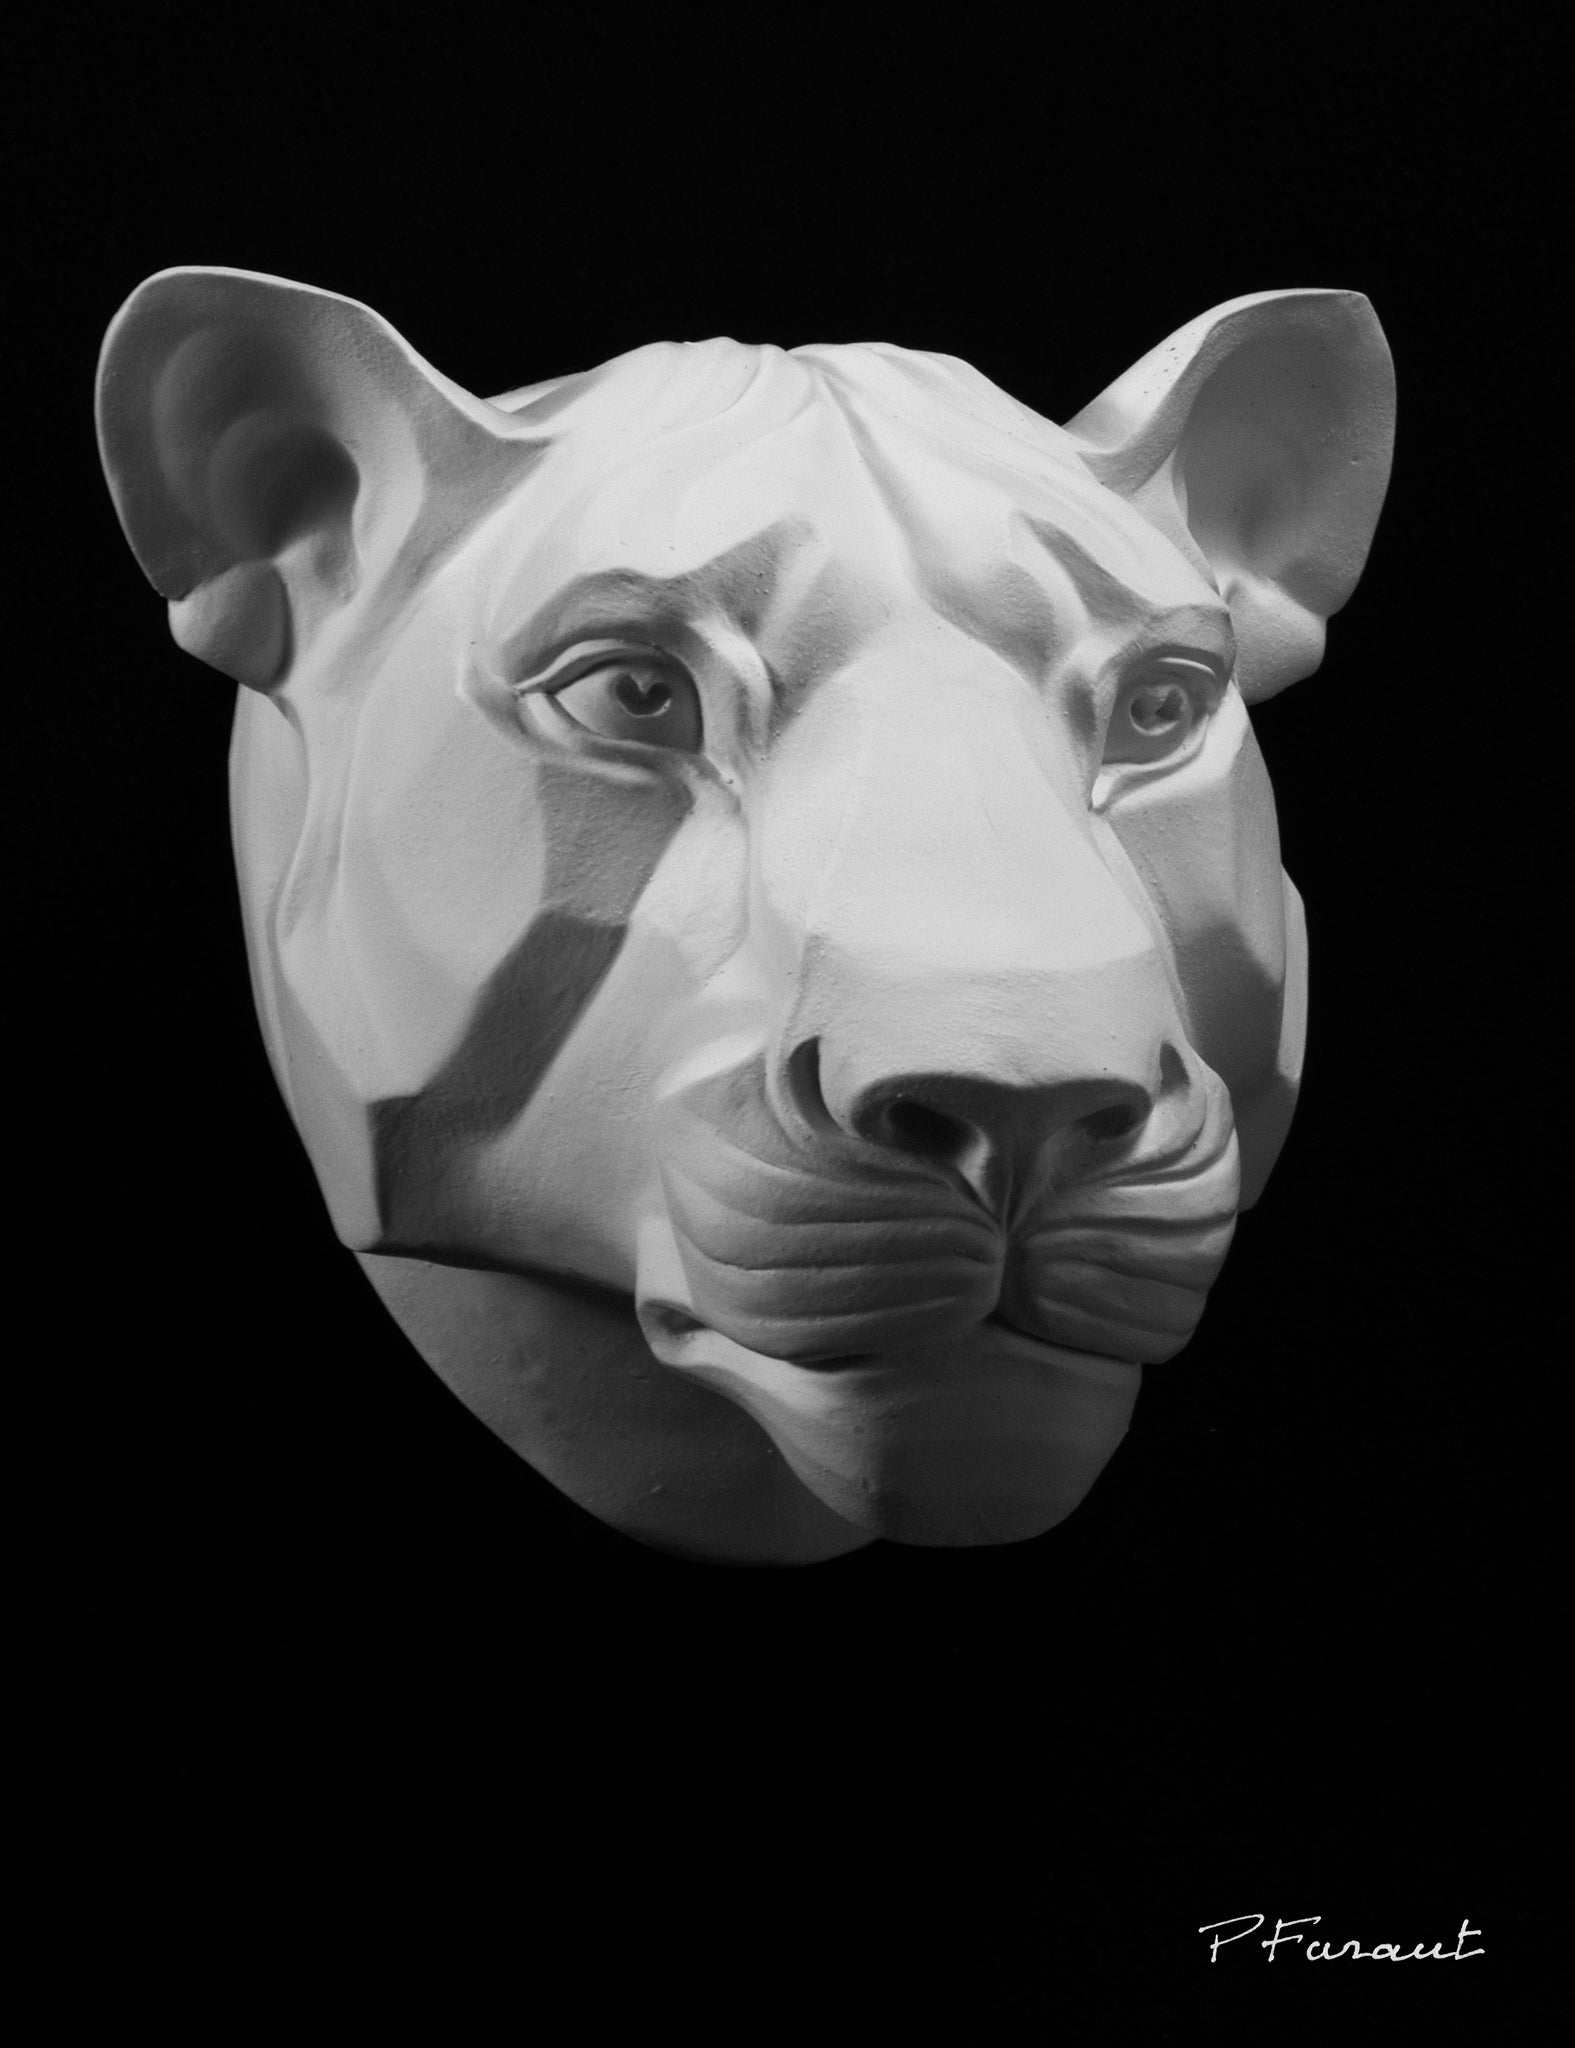 lioness drawing cast, lioness sculpture cast, lioness mask, art reference cast, lioness plaster cast for artist, lioness anatomy, 3d animal reference, cat mask, cat art reference, plaster cat mask